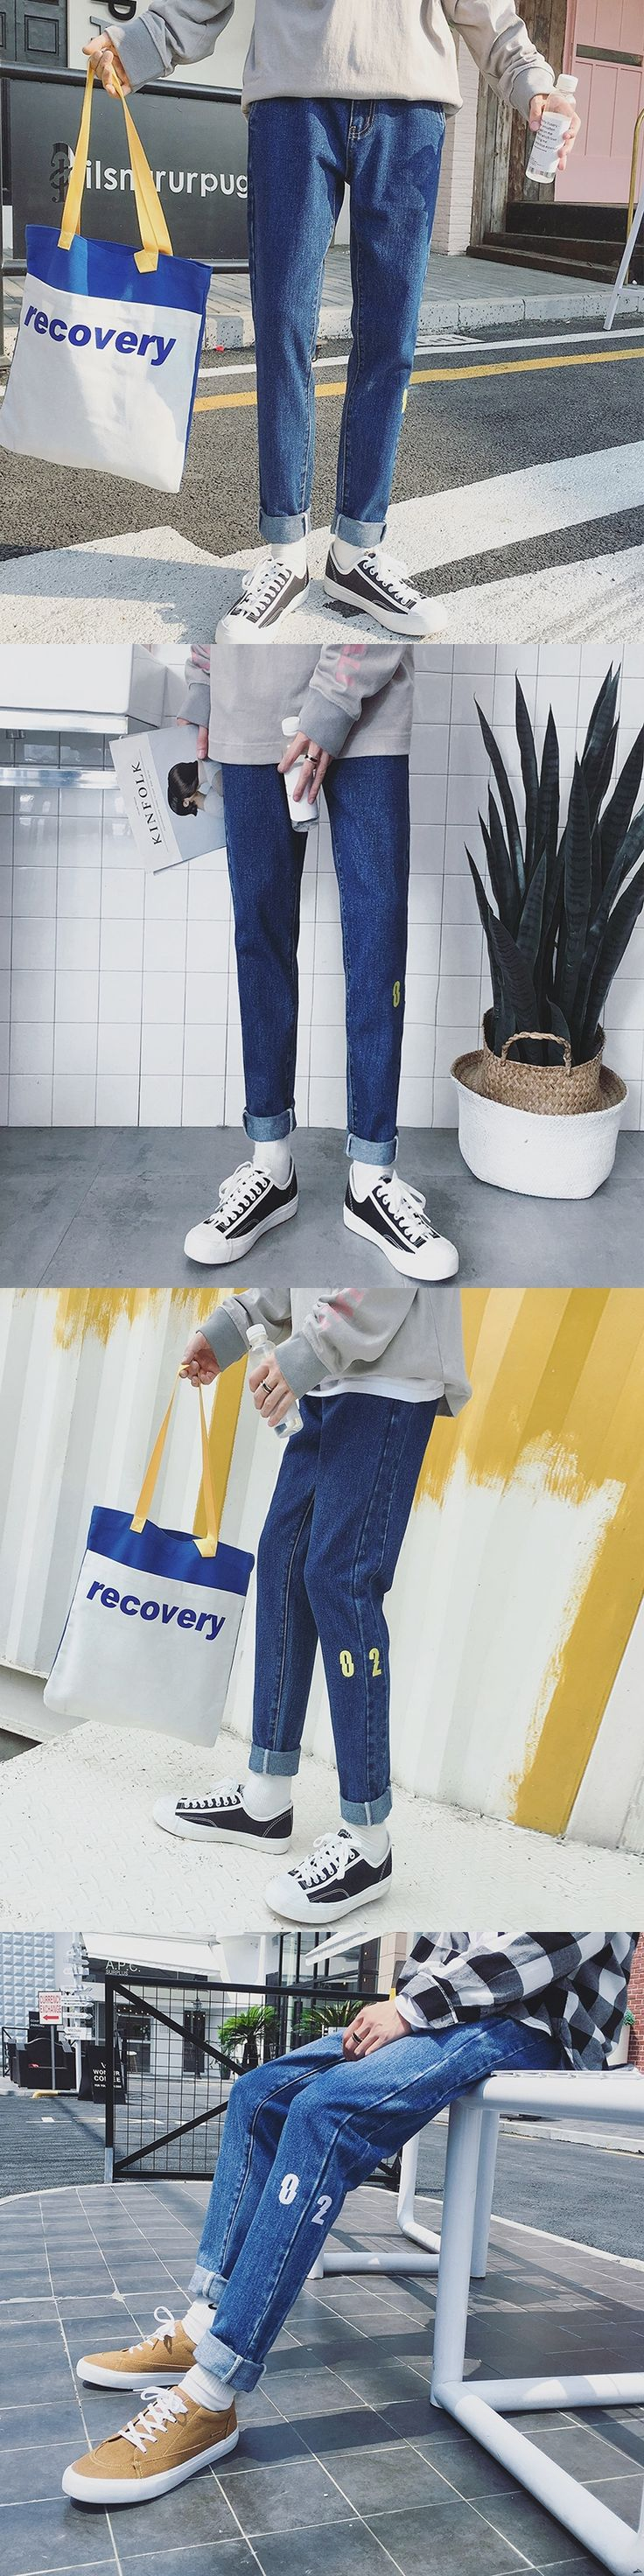 2017 Winter Men's Fashion Hongkong Style All-Match Nine Jeans Embroidered Pants Bound Feet Solid Color Straight Trousers S-4XL